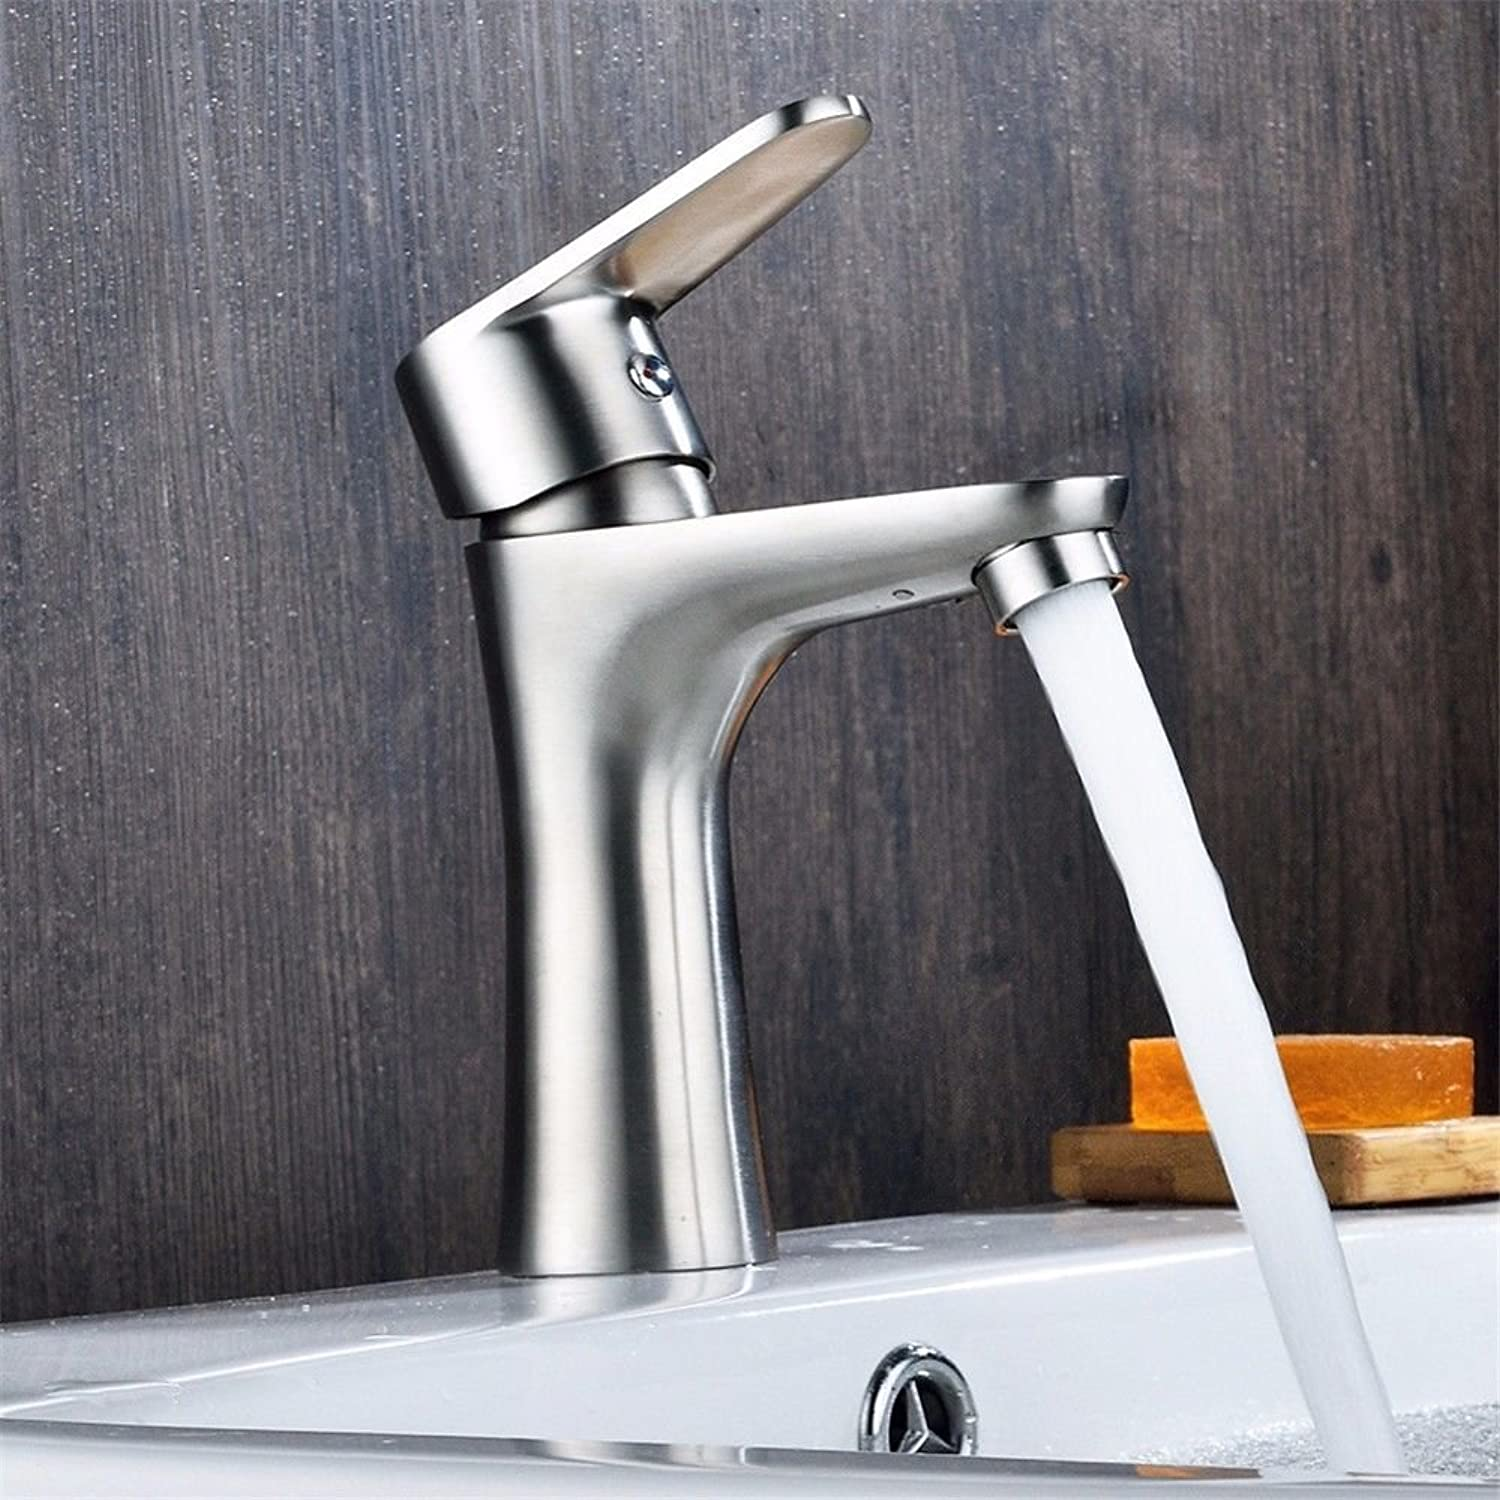 Hlluya Professional Sink Mixer Tap Kitchen Faucet Stainless steel hot and cold water basin mixer basin mixer faucet water faucet Single-tap Power Tap-to-Tap,A,1